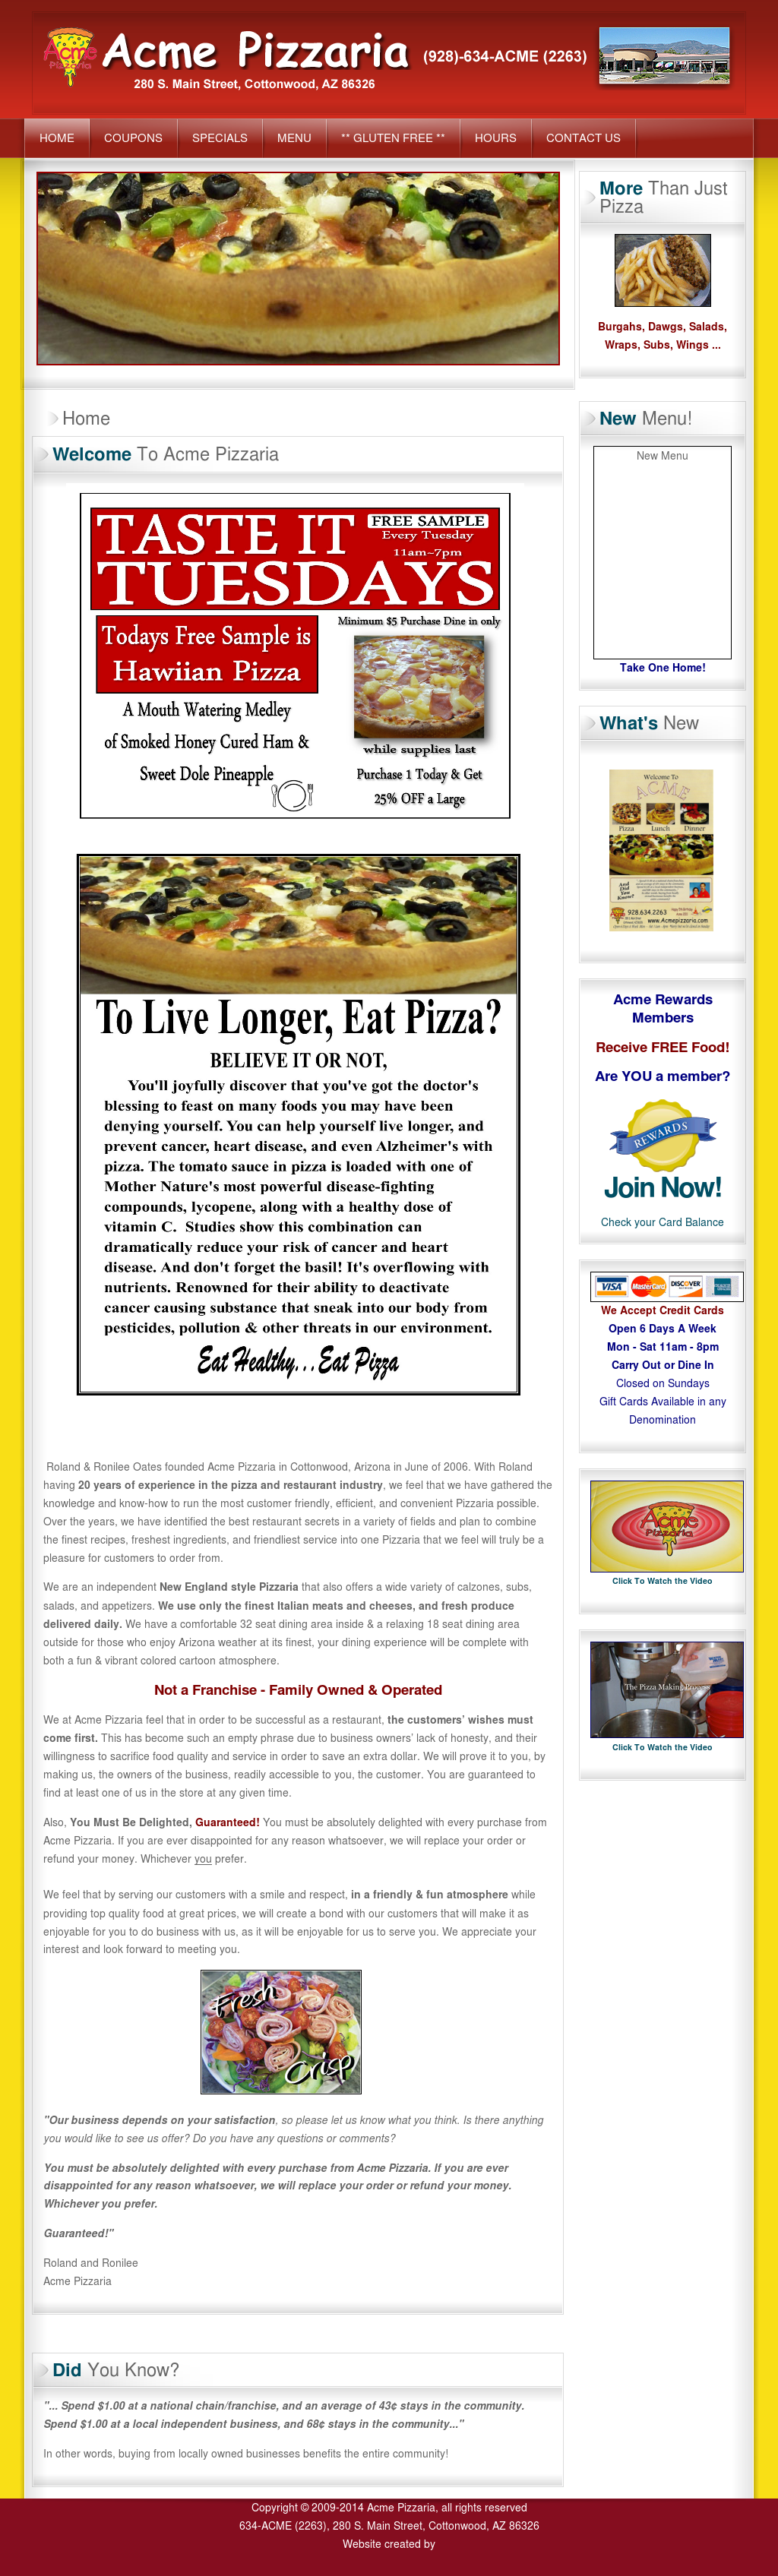 Acme Pizzaria Competitors, Revenue and Employees - Owler Company Profile